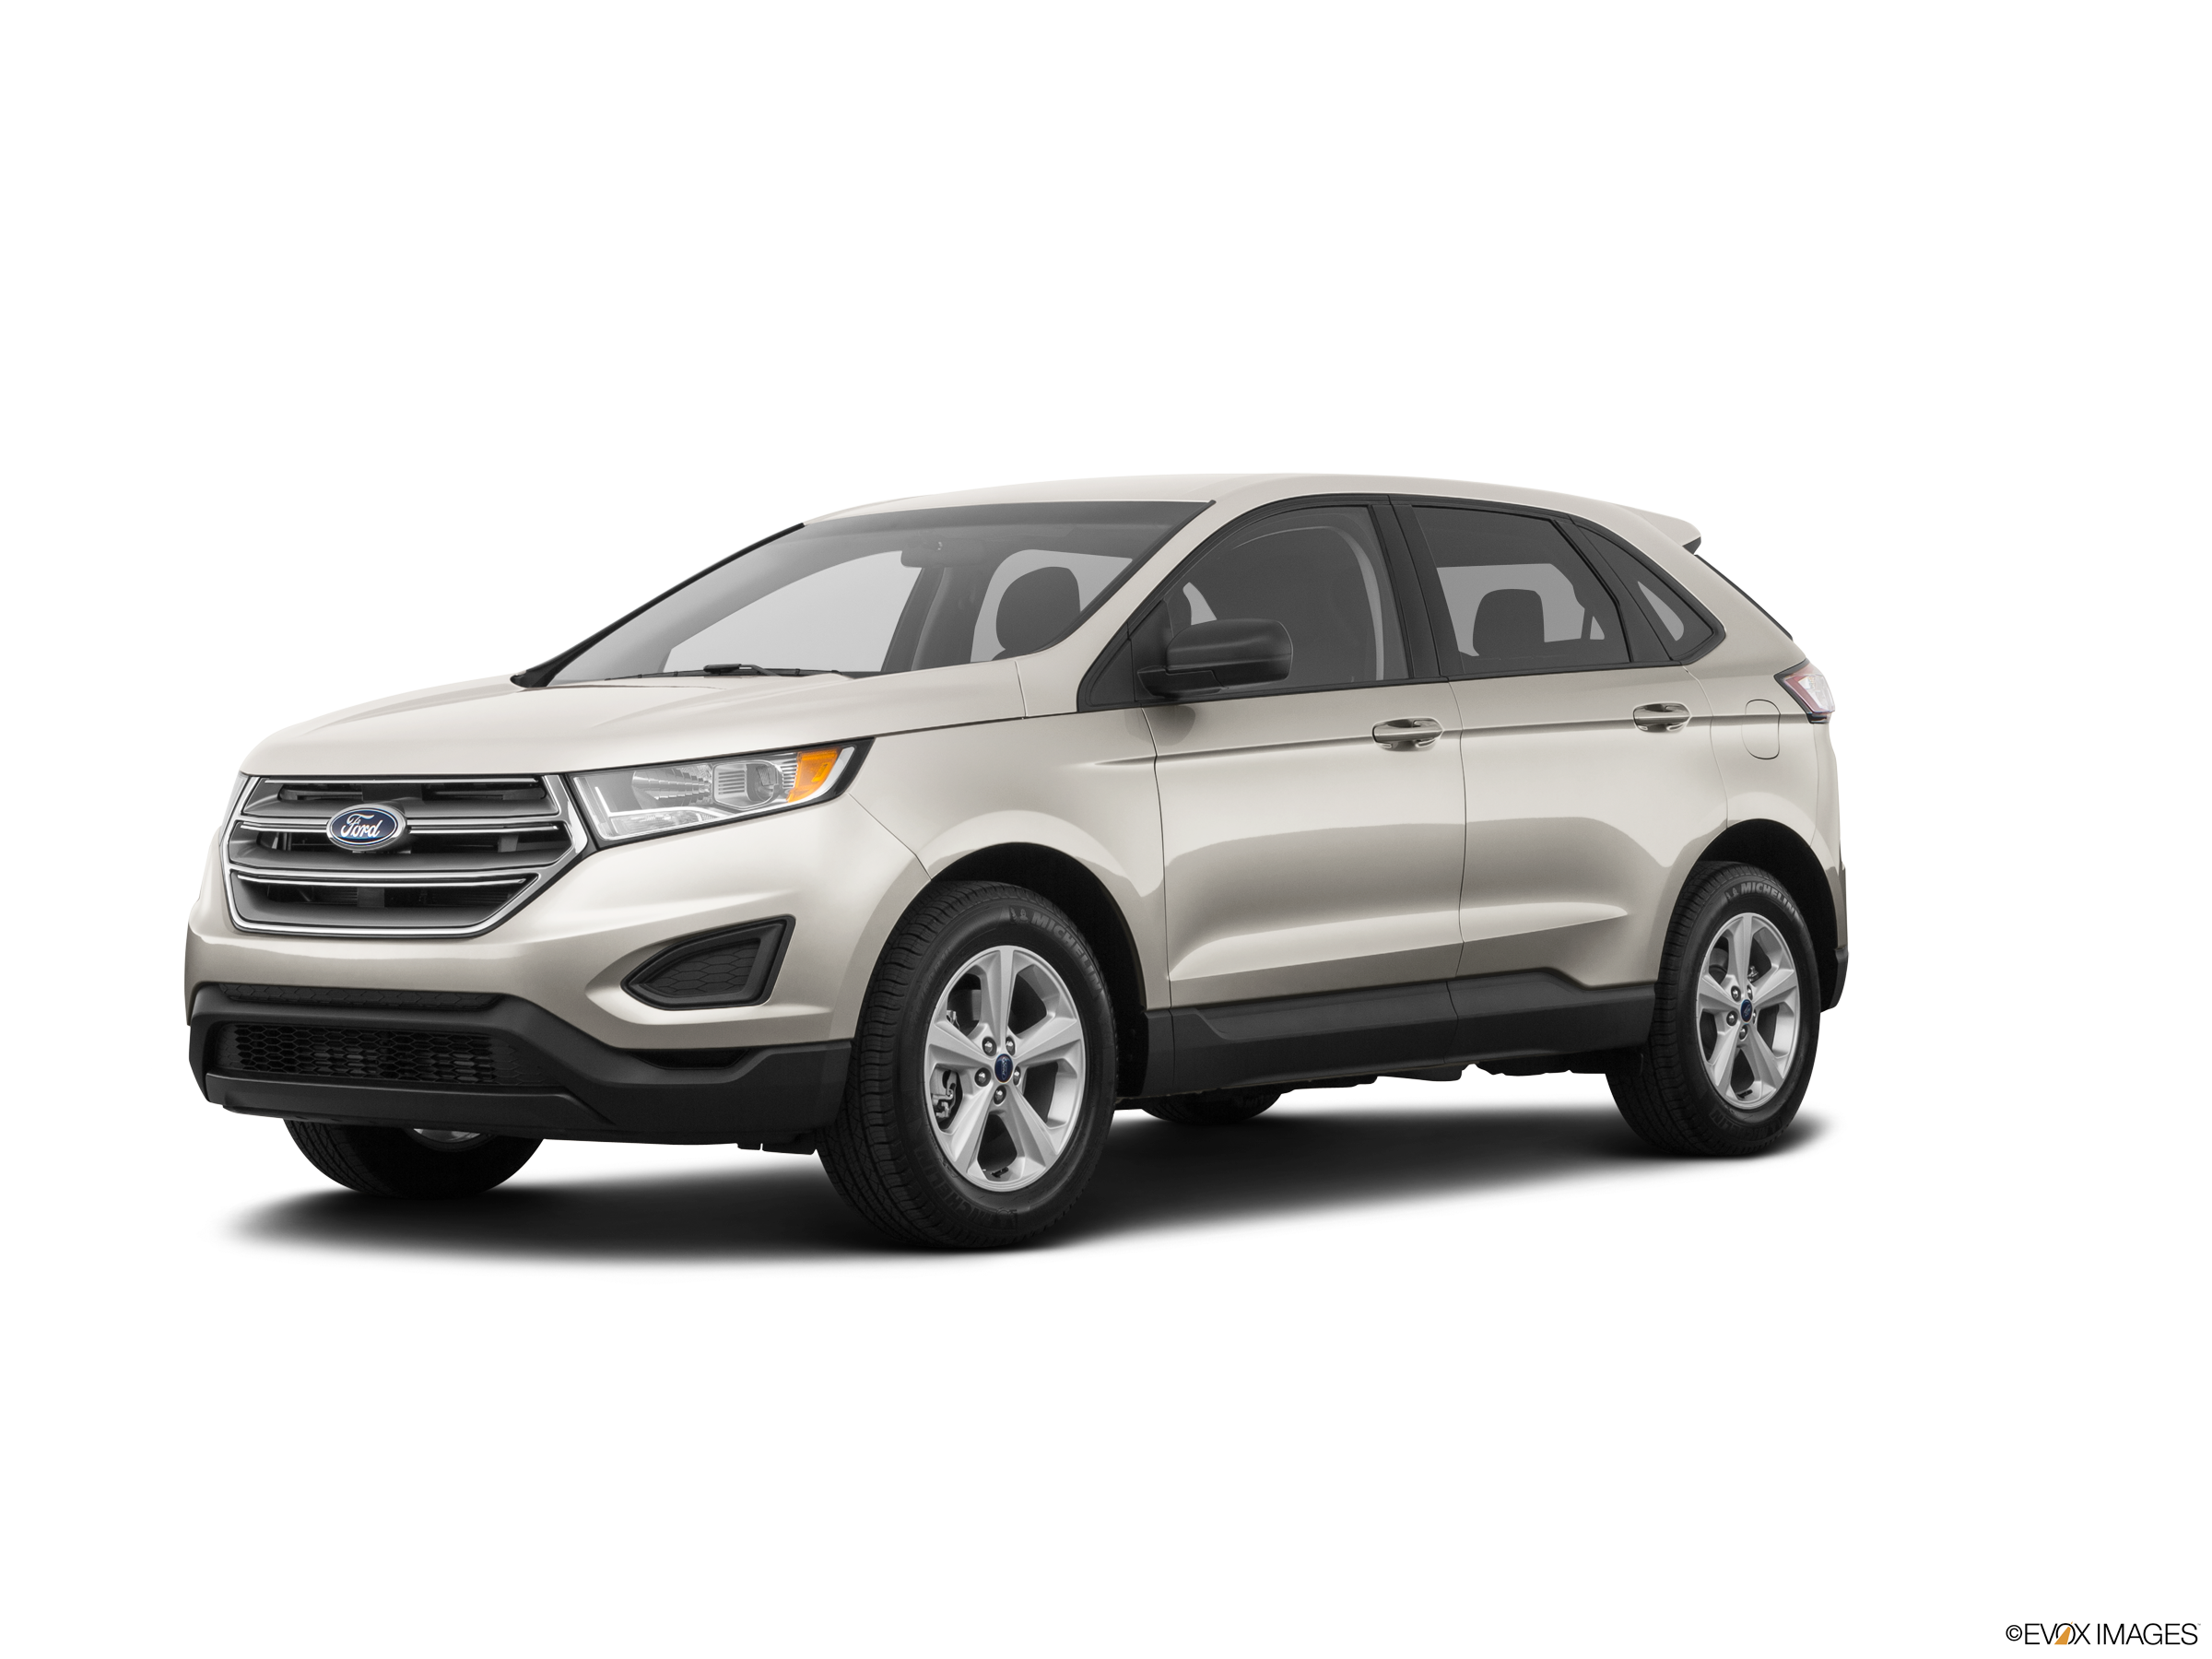 25 Best-Selling SUVs of 2018 - Ford Edge